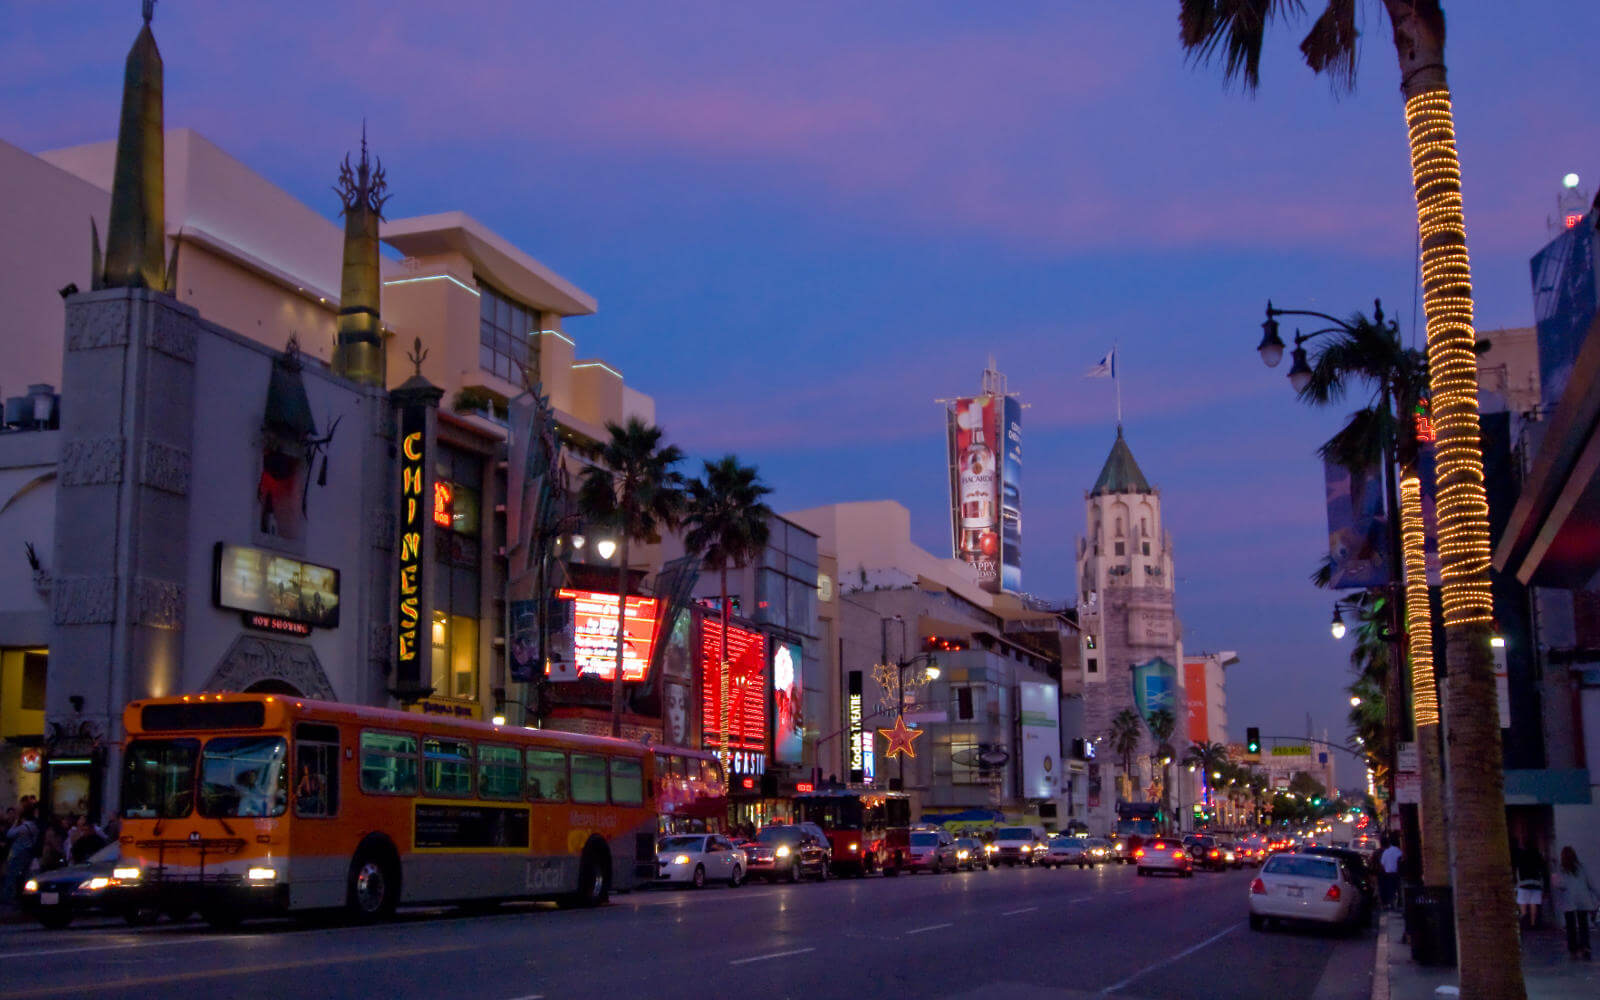 Los Angeles: Hollywood Boulevard